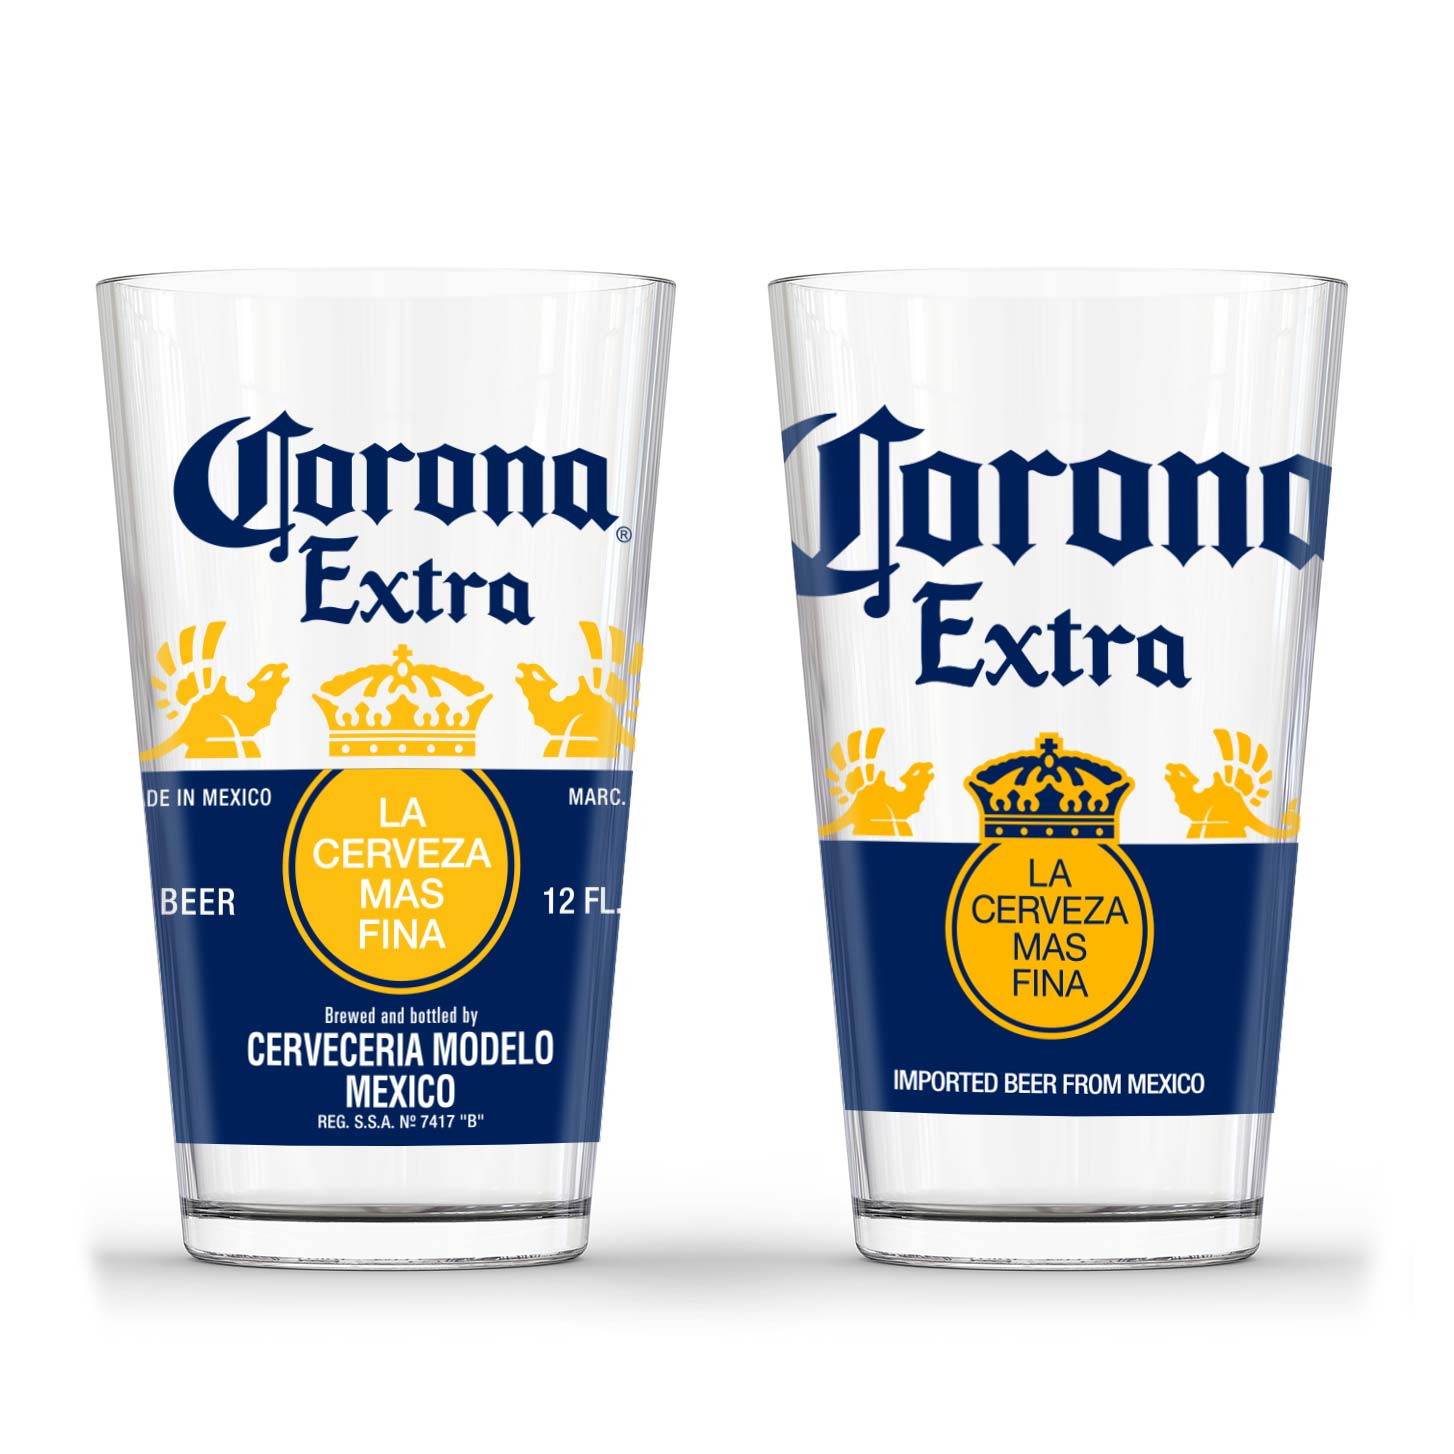 Corona Extra Pint Glass Set by Corona